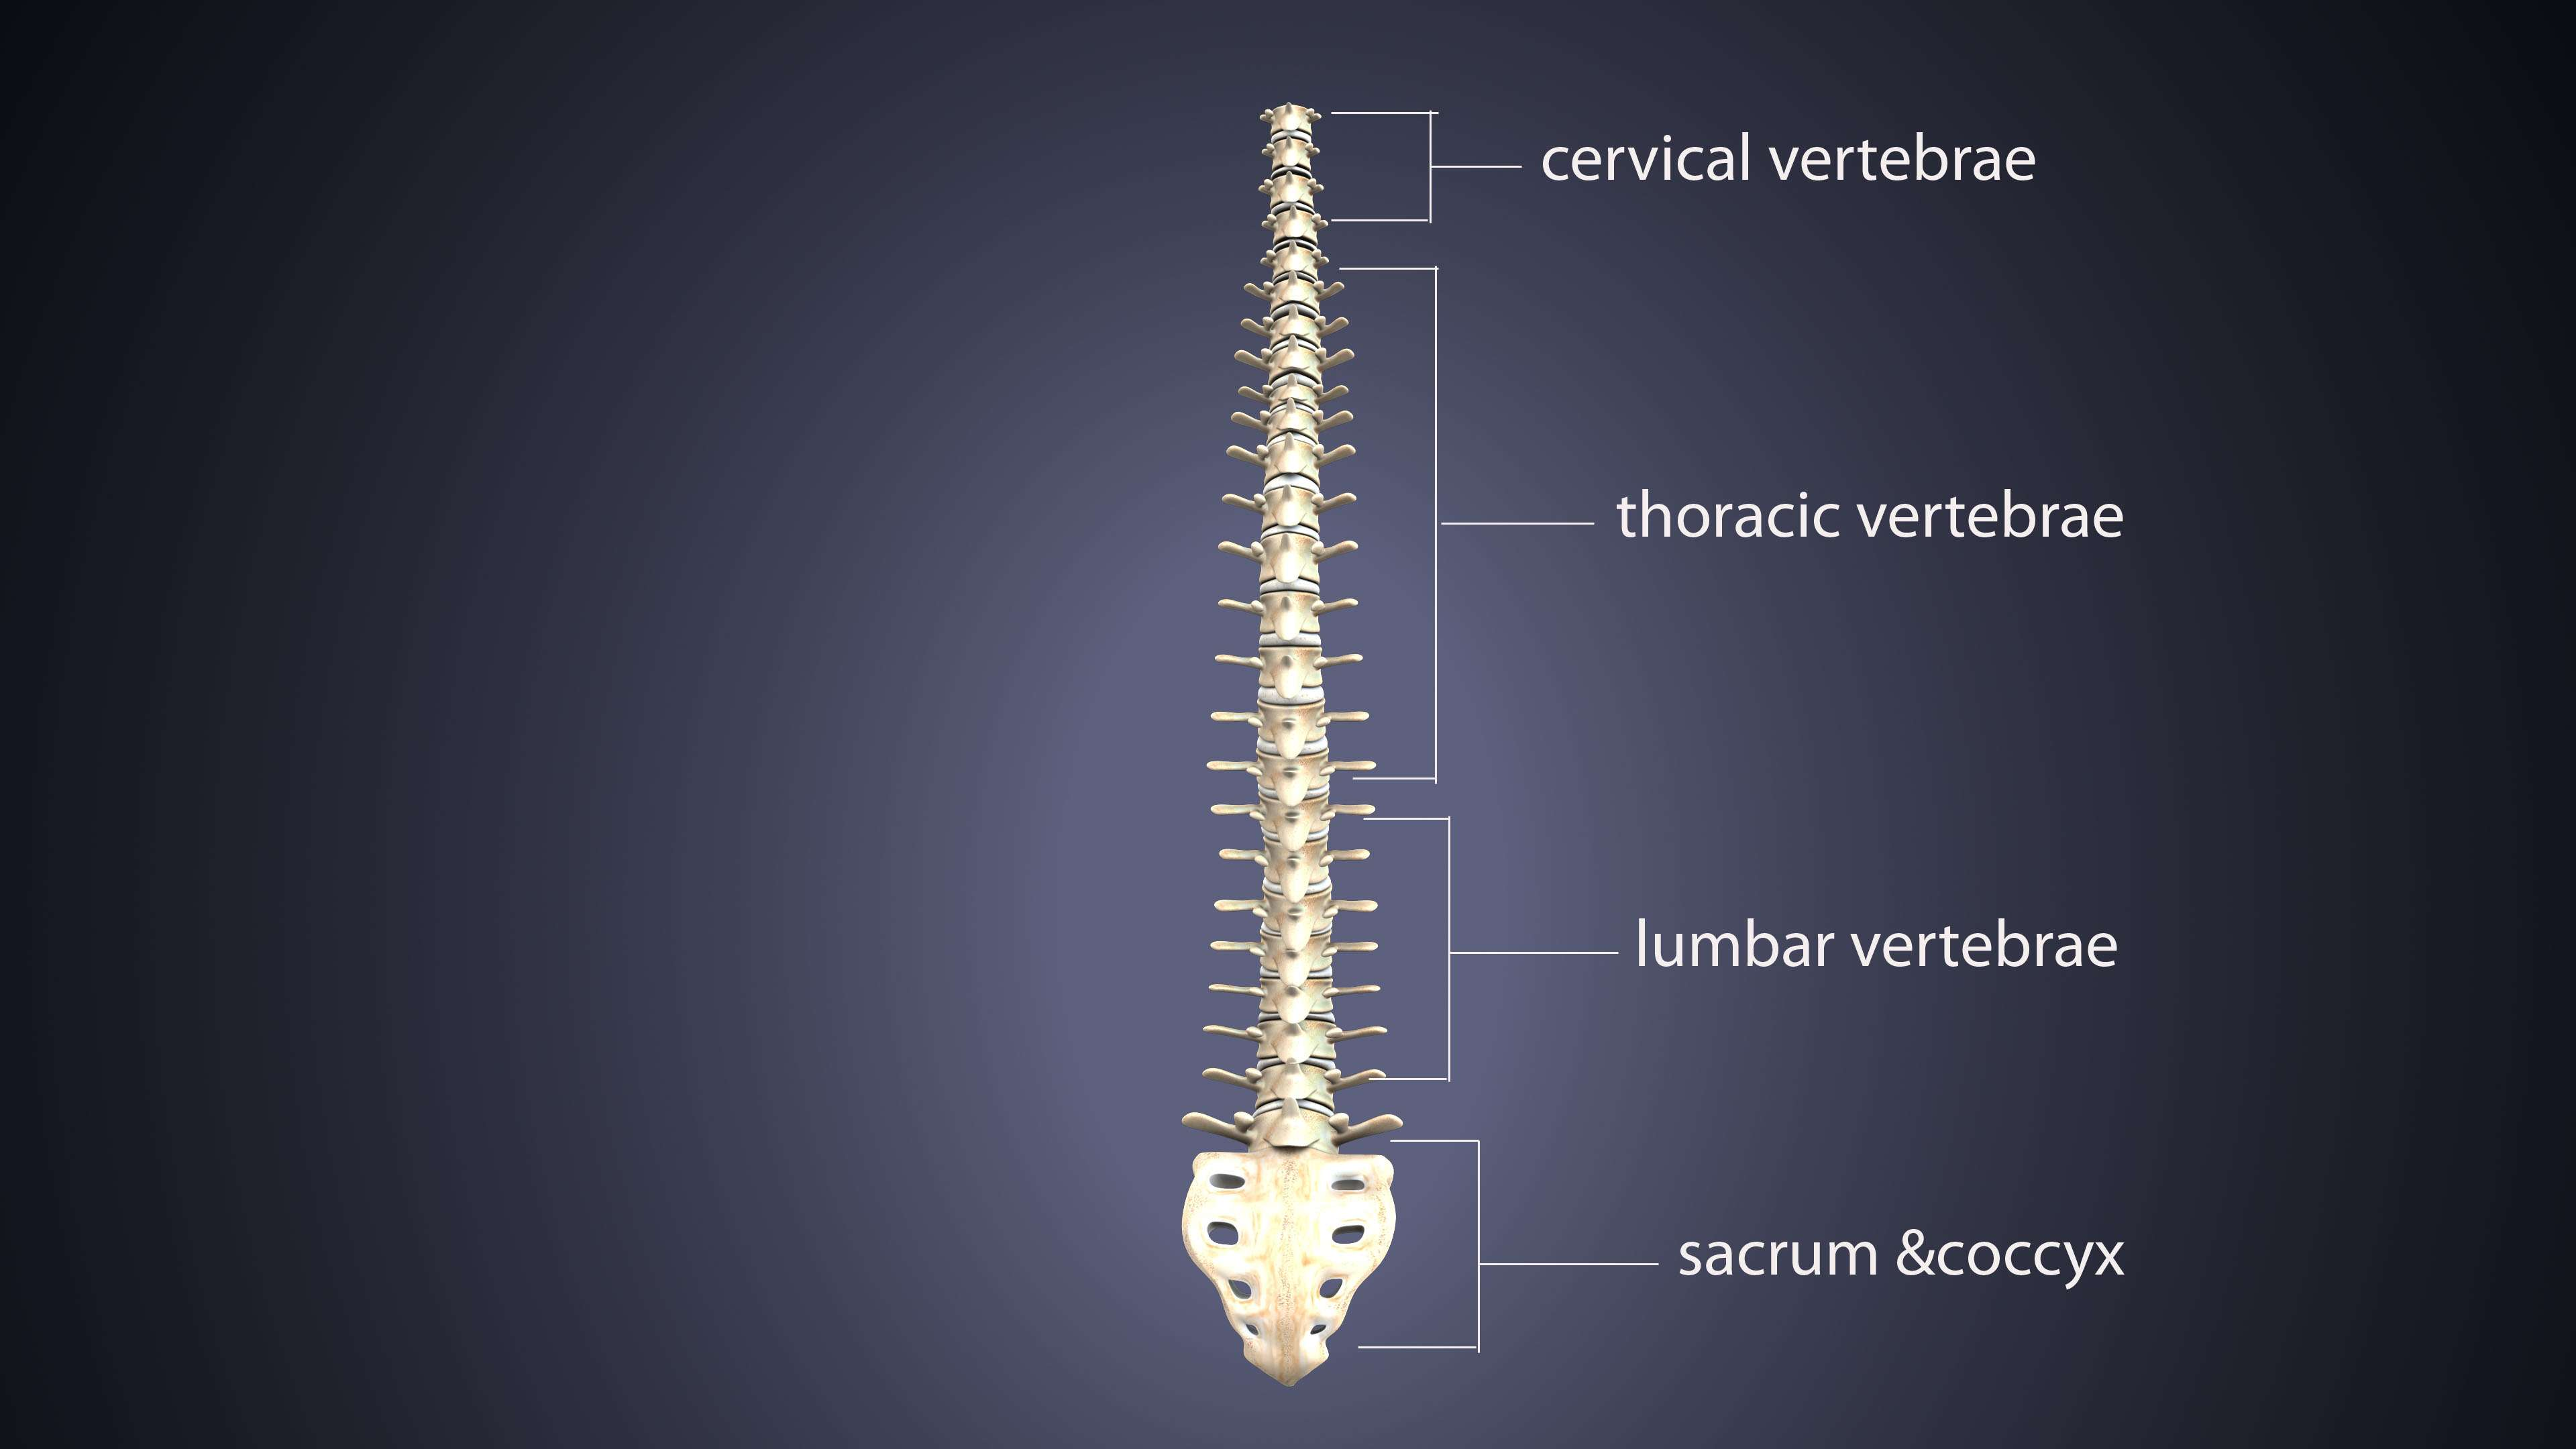 A diagram shows the regions of the spine.